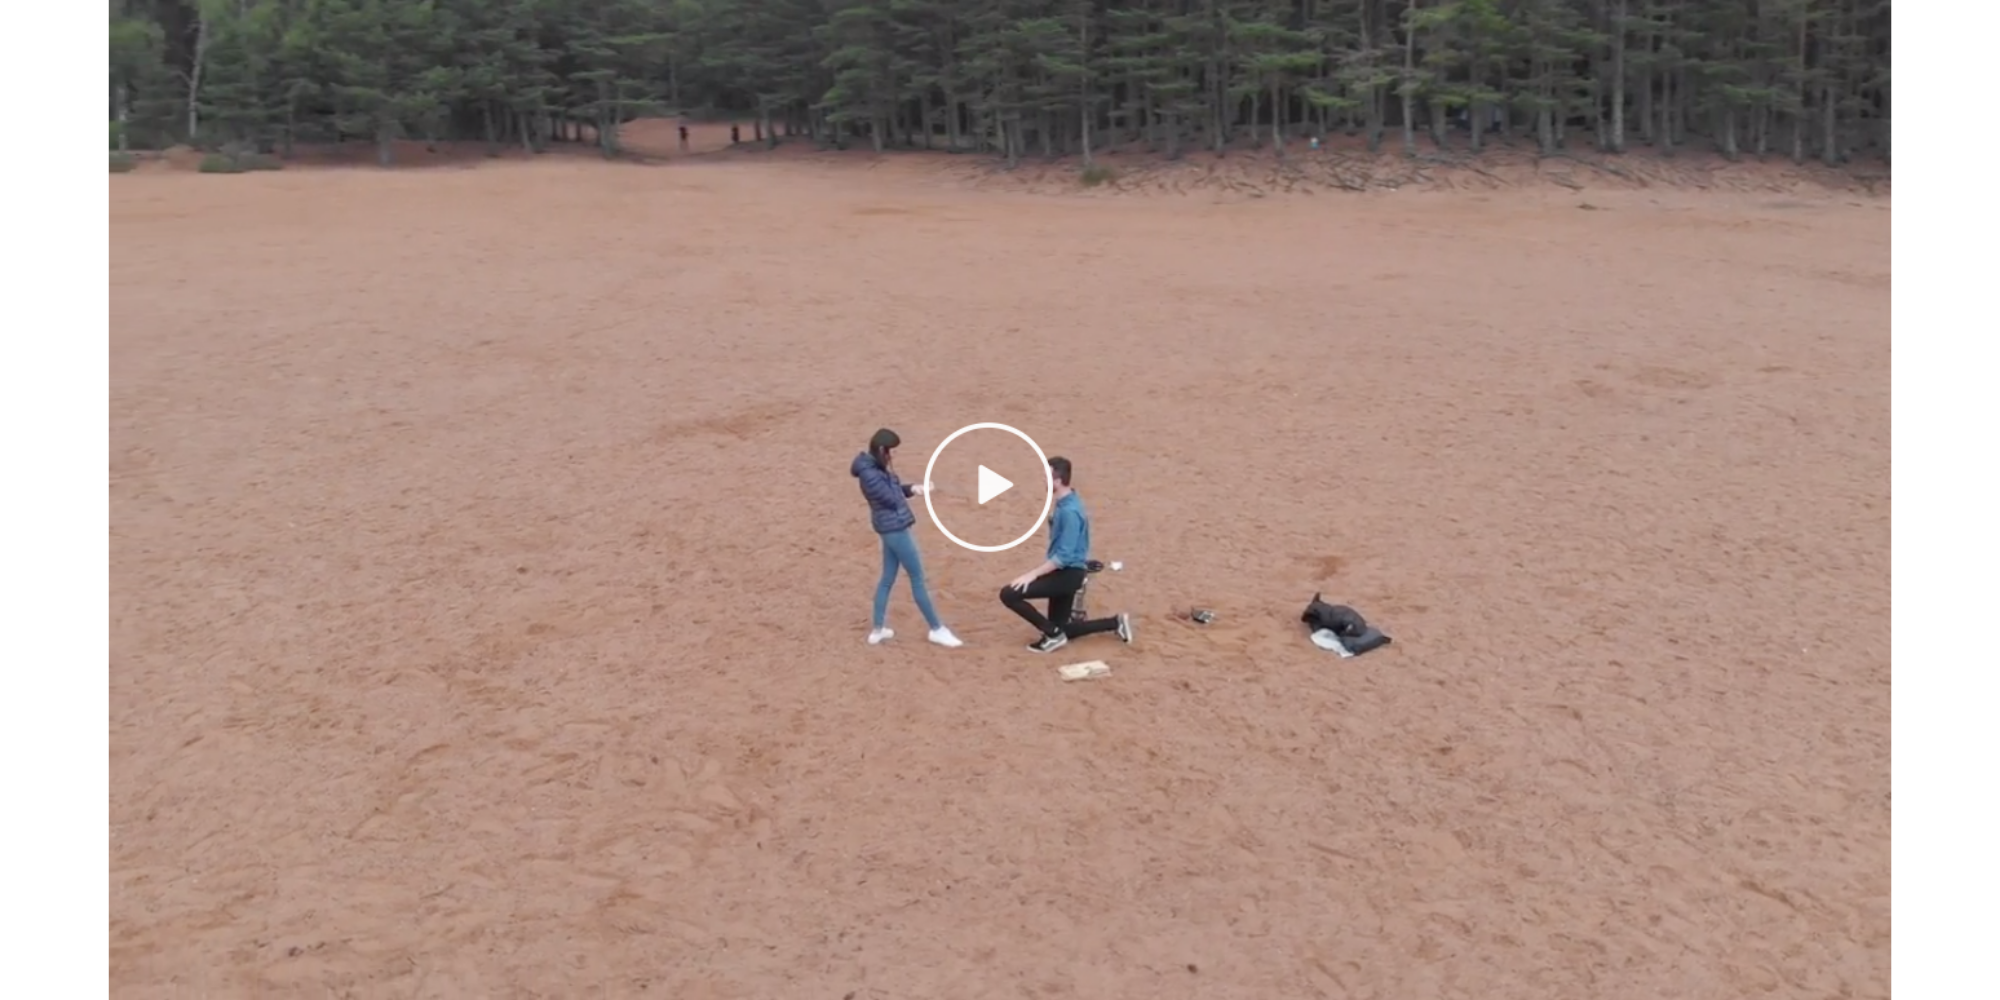 A clever drone pilot recently put his drone to use in a very new way: To document his marriage proposal. Using a DJI Mavic Air, the plan worked perfec